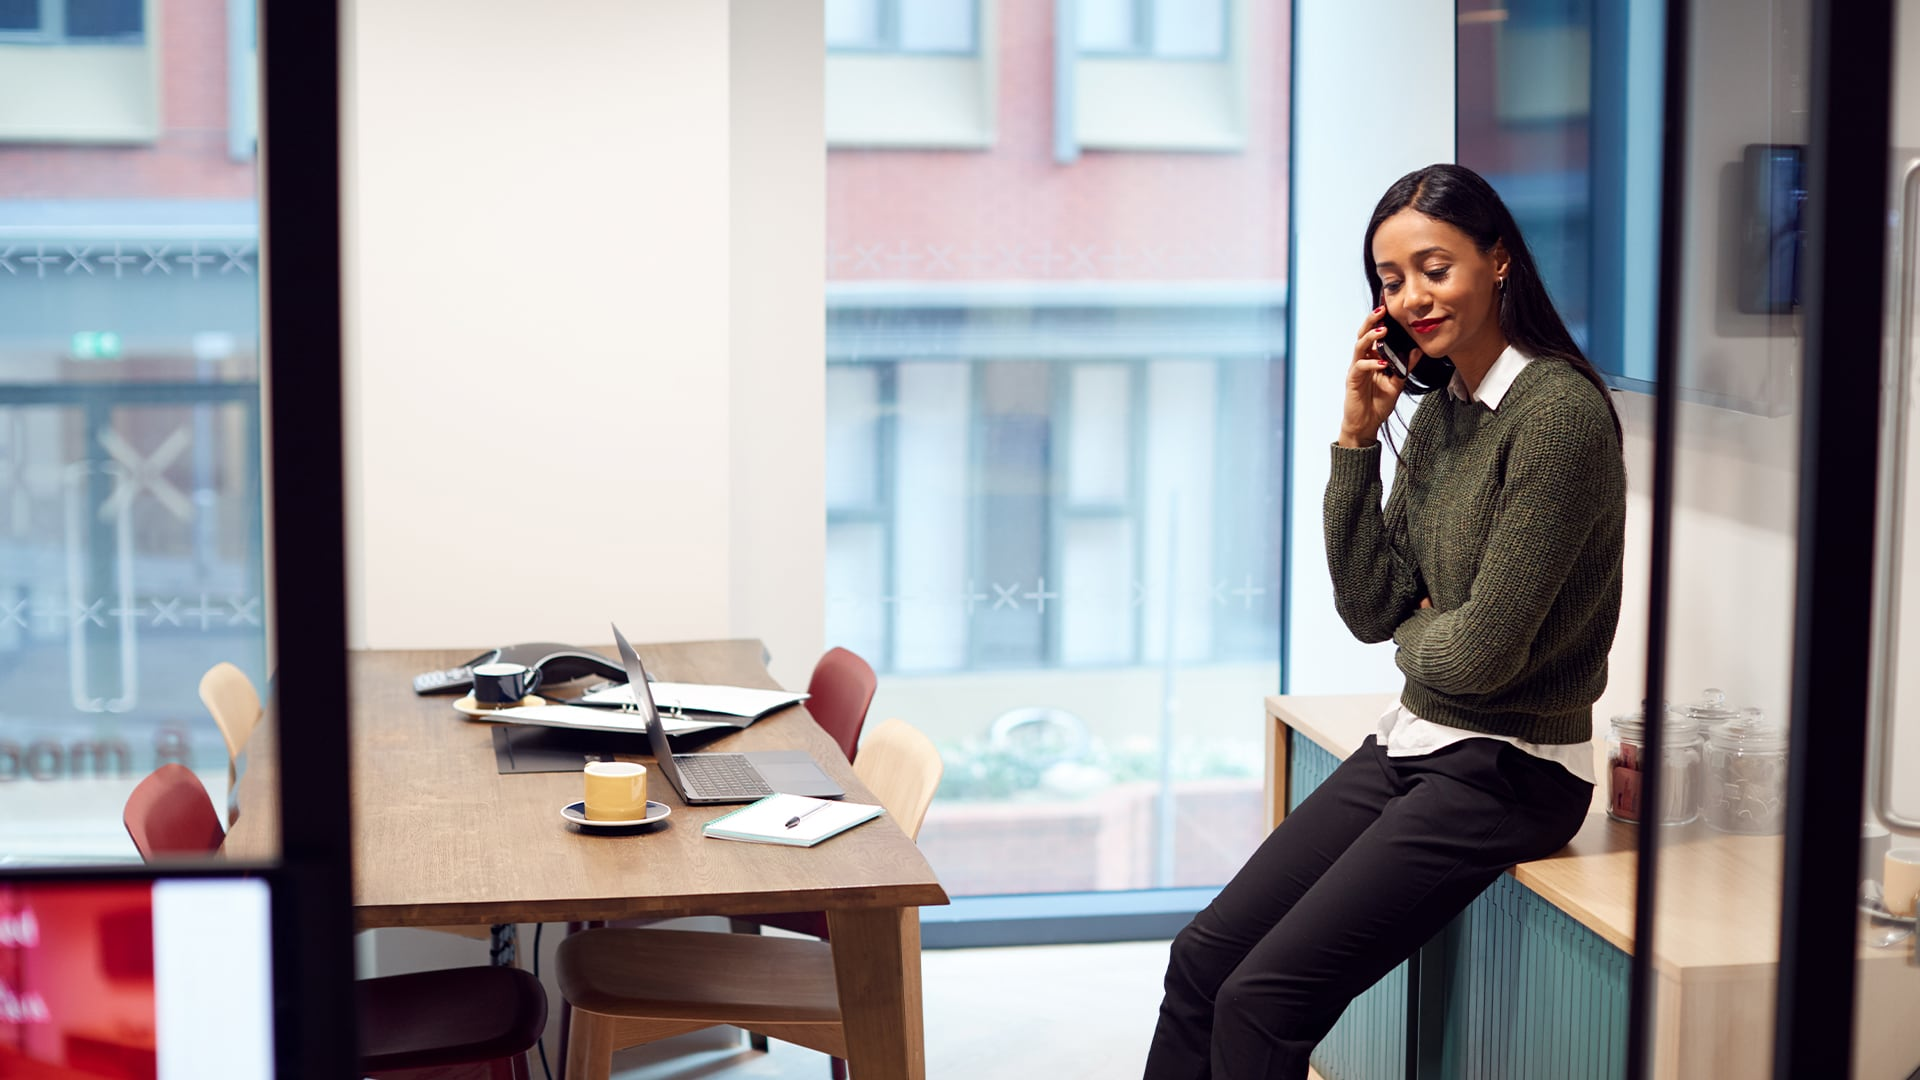 A property manager in her office talking to a contractor on the phone